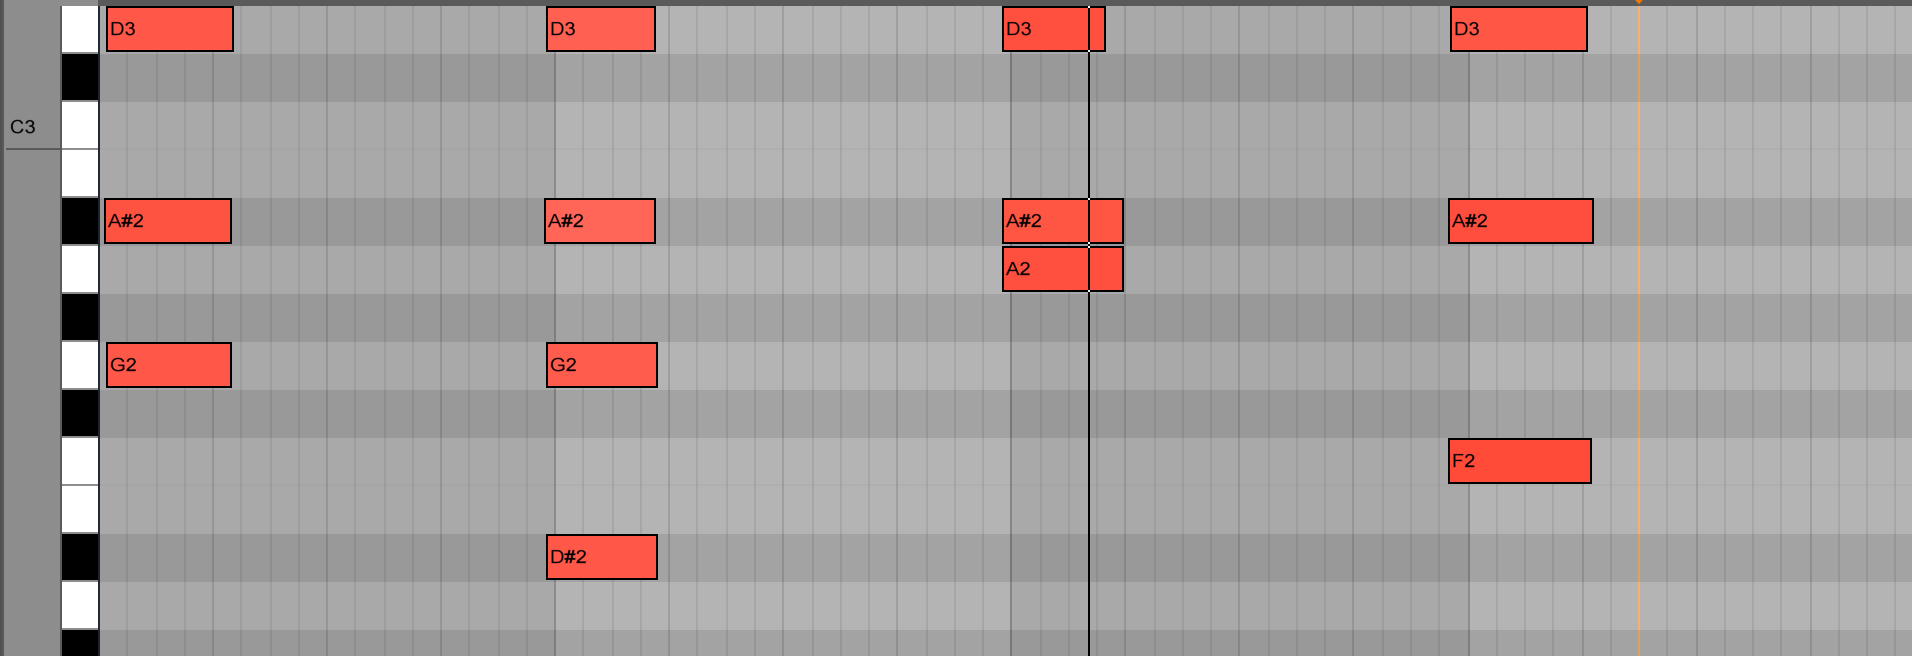 How To Start a Track With an Acapella in 10 Simple Steps